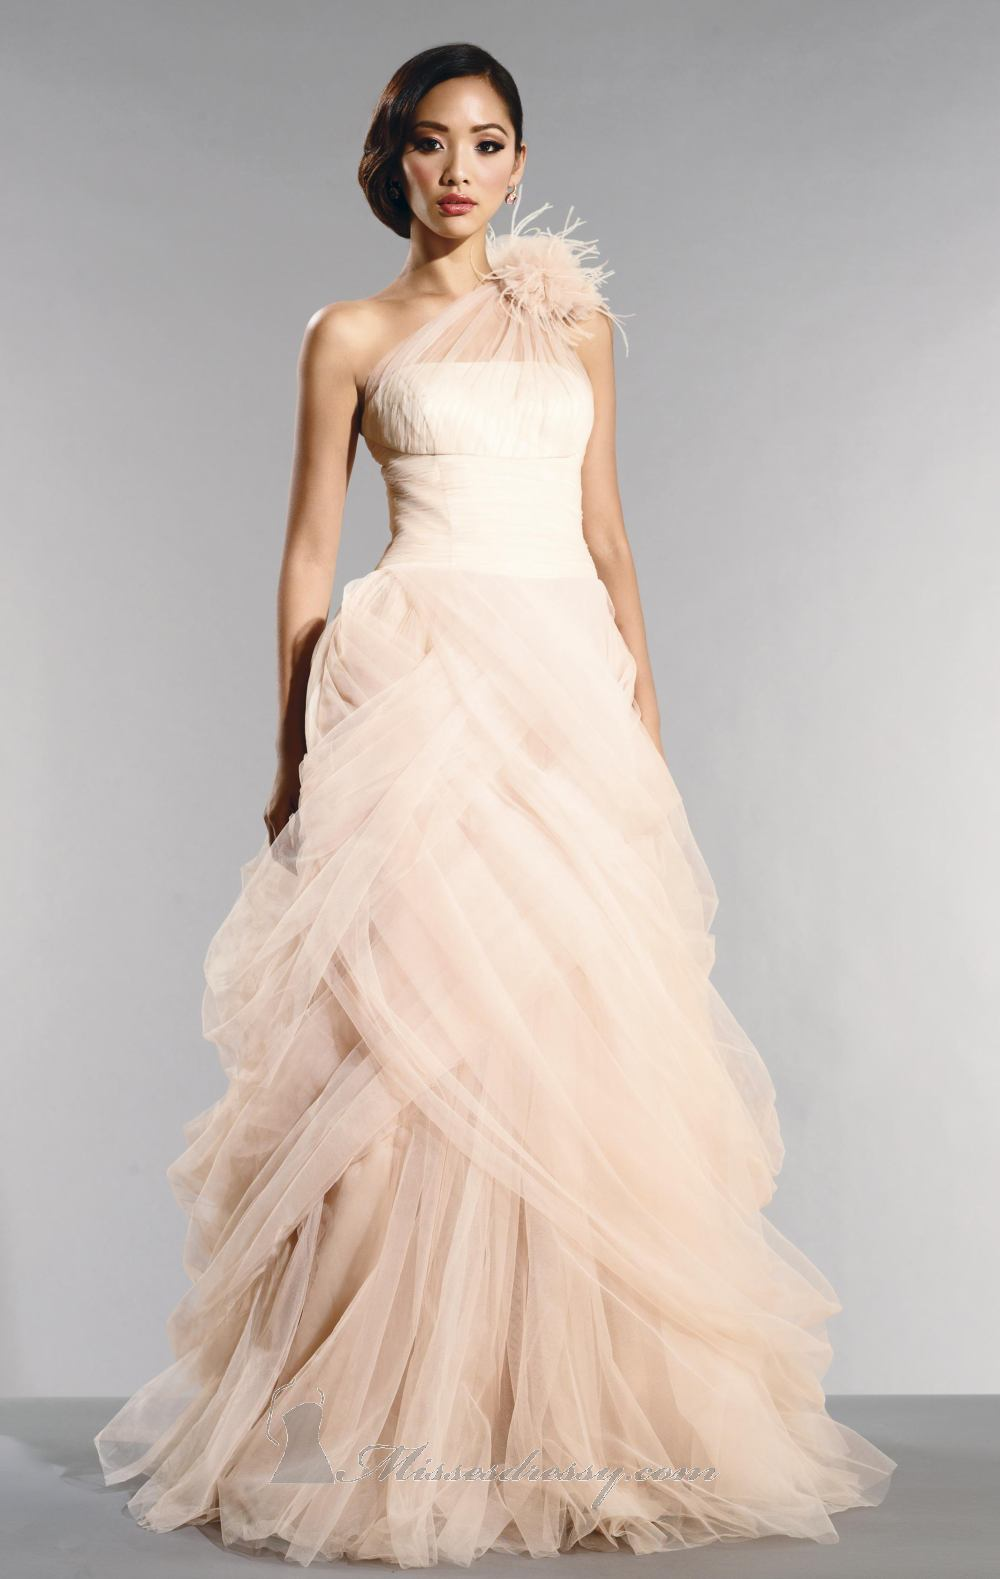 wedding_dress_pink.jpg